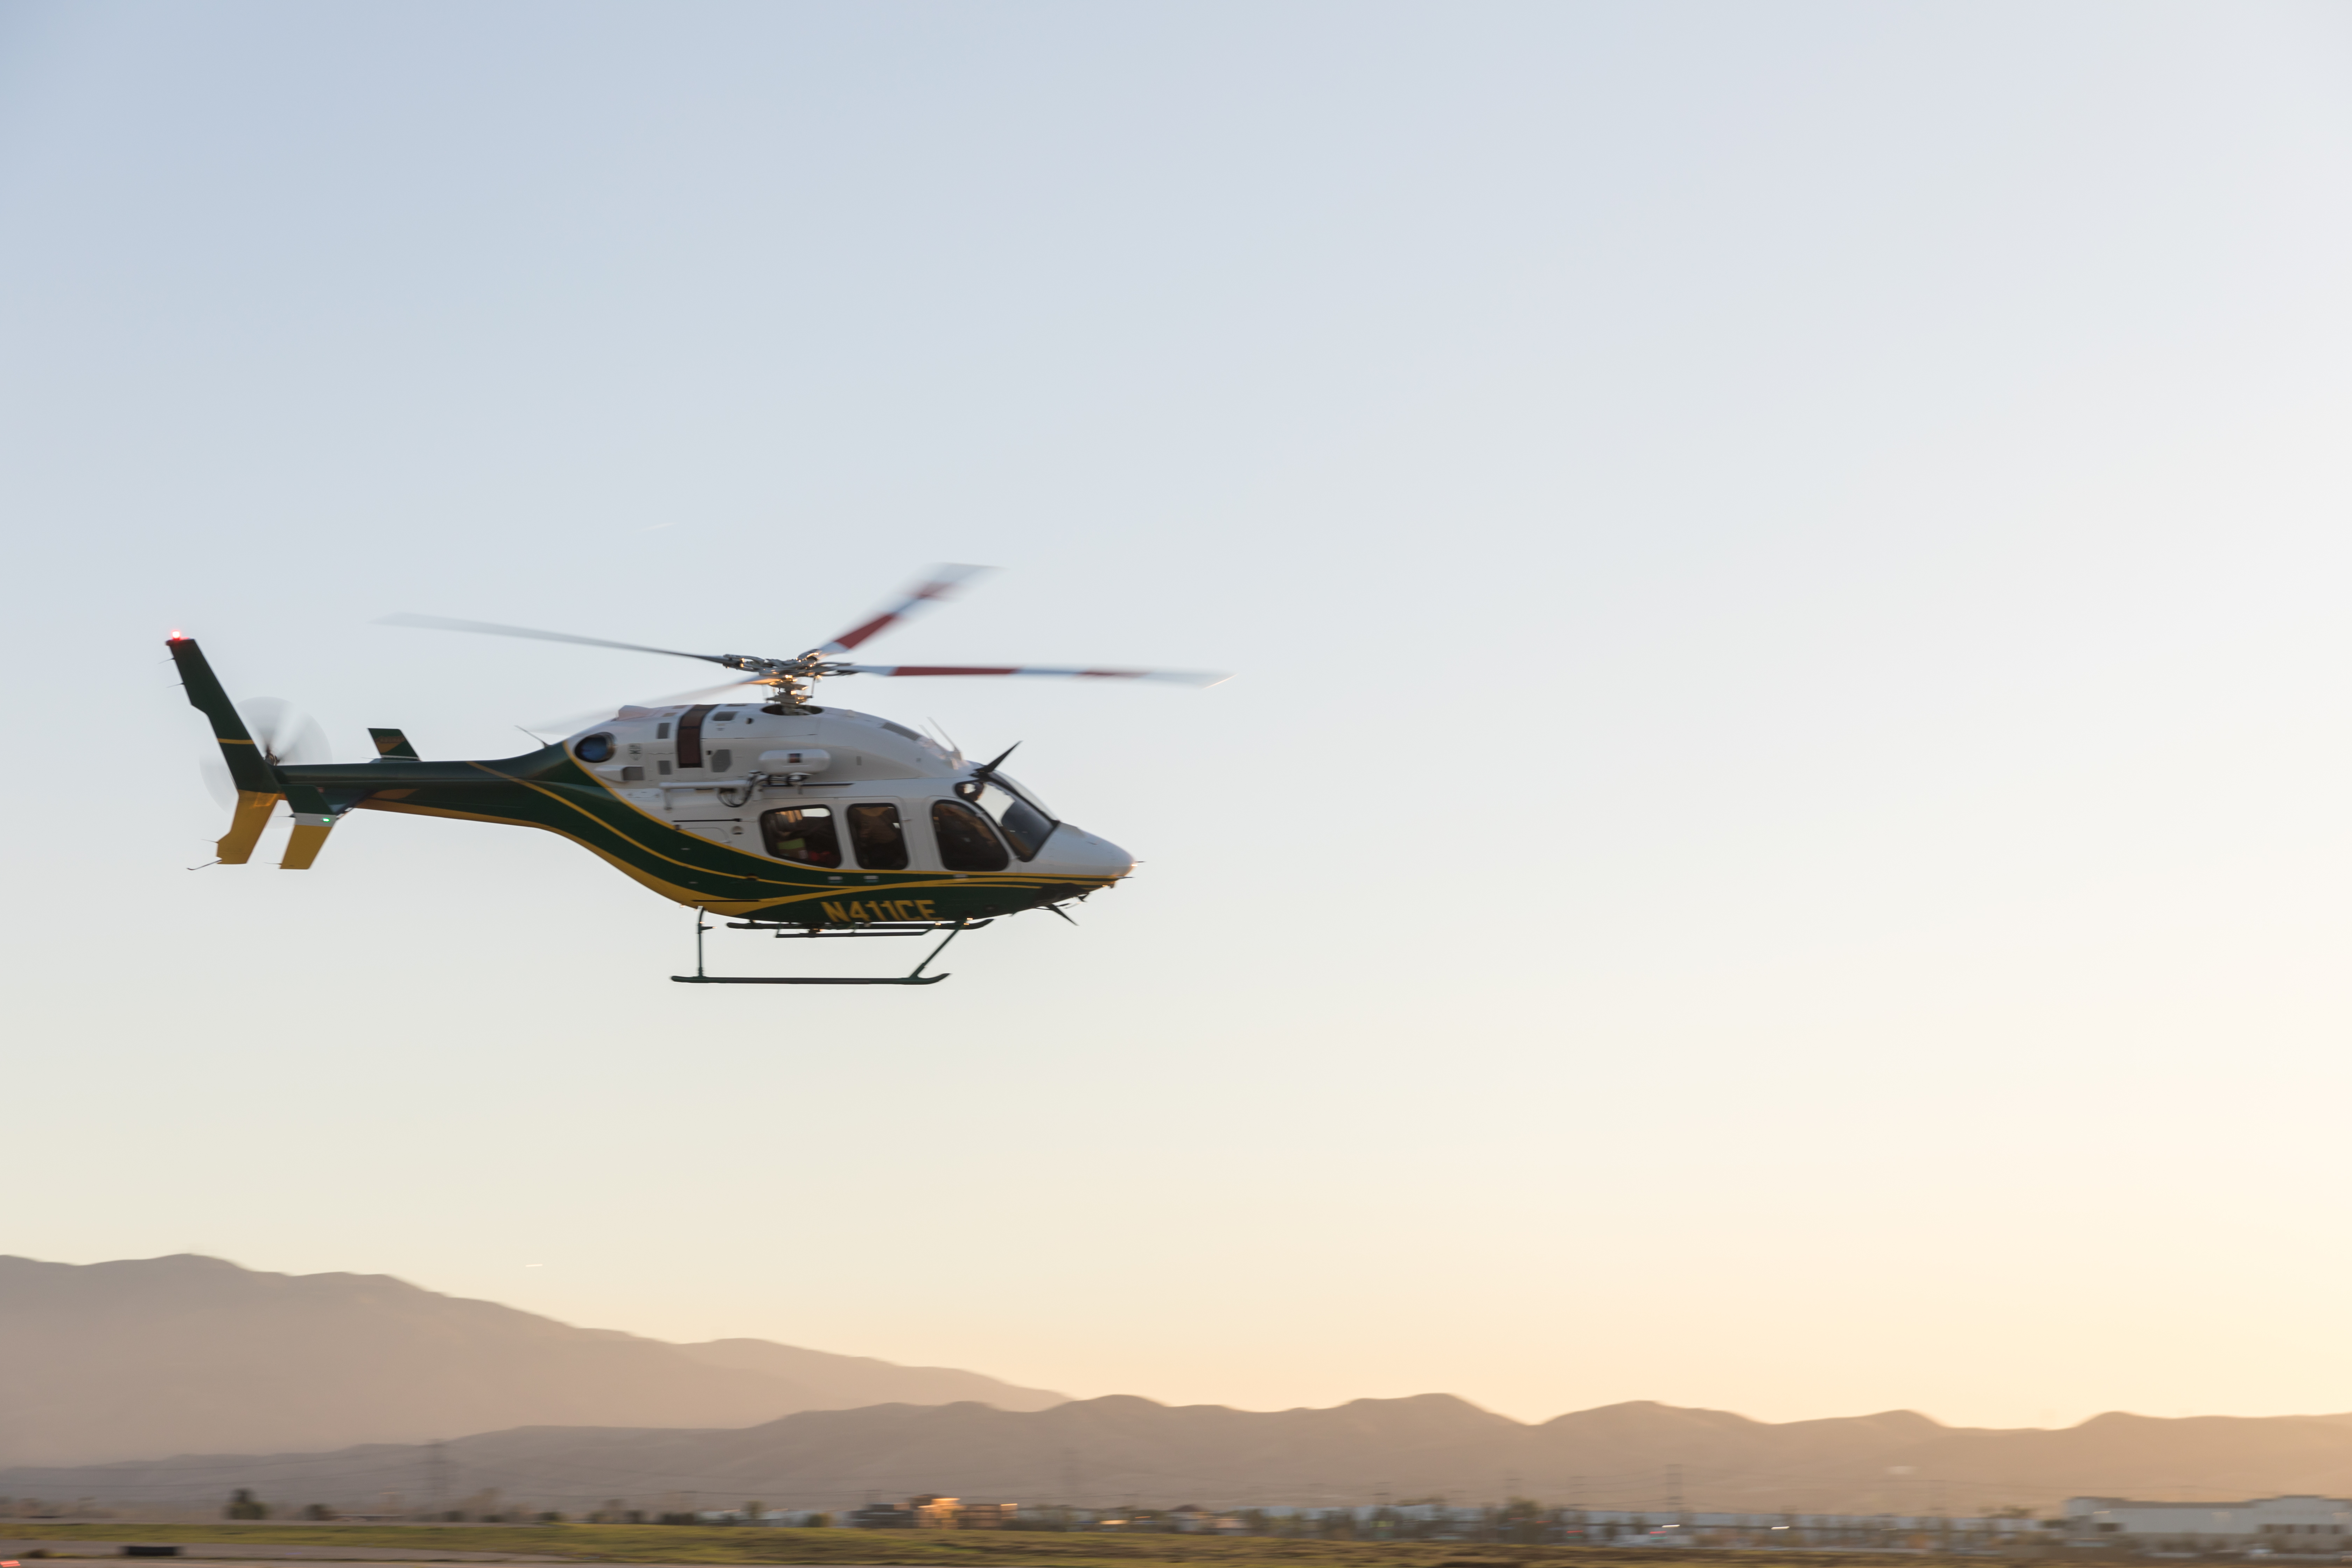 The first of two Bell 429 helicopters recently acquired by SCE lands at Chino Airport.